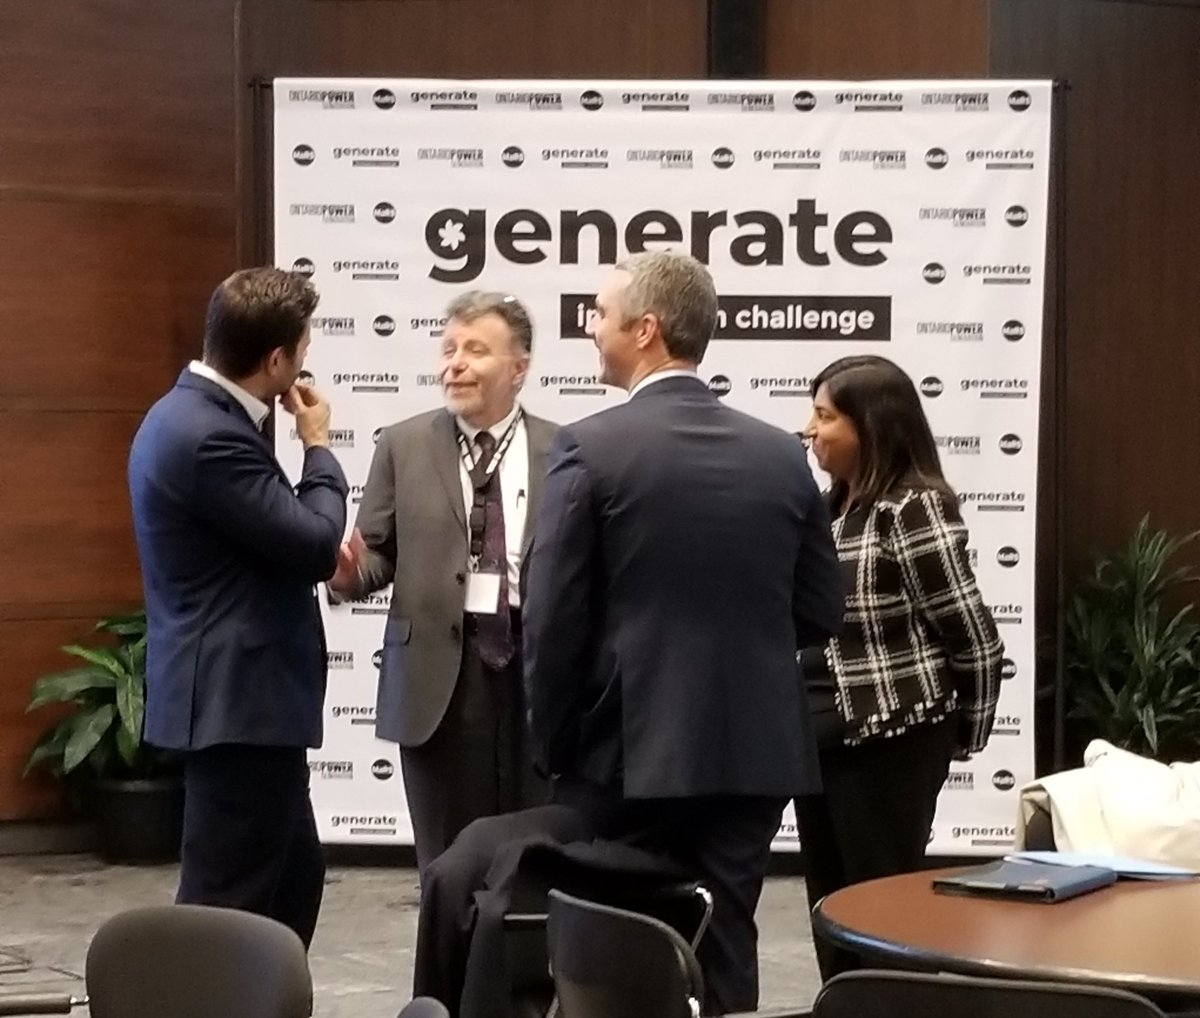 Getting ready to #GenerateInnovation at the @opg / @MaRSDD Innovation Finalist Showcase. Judges are getting into place including COG's Fred Dermarkar. #ToughChoices #technology #energy #inventors